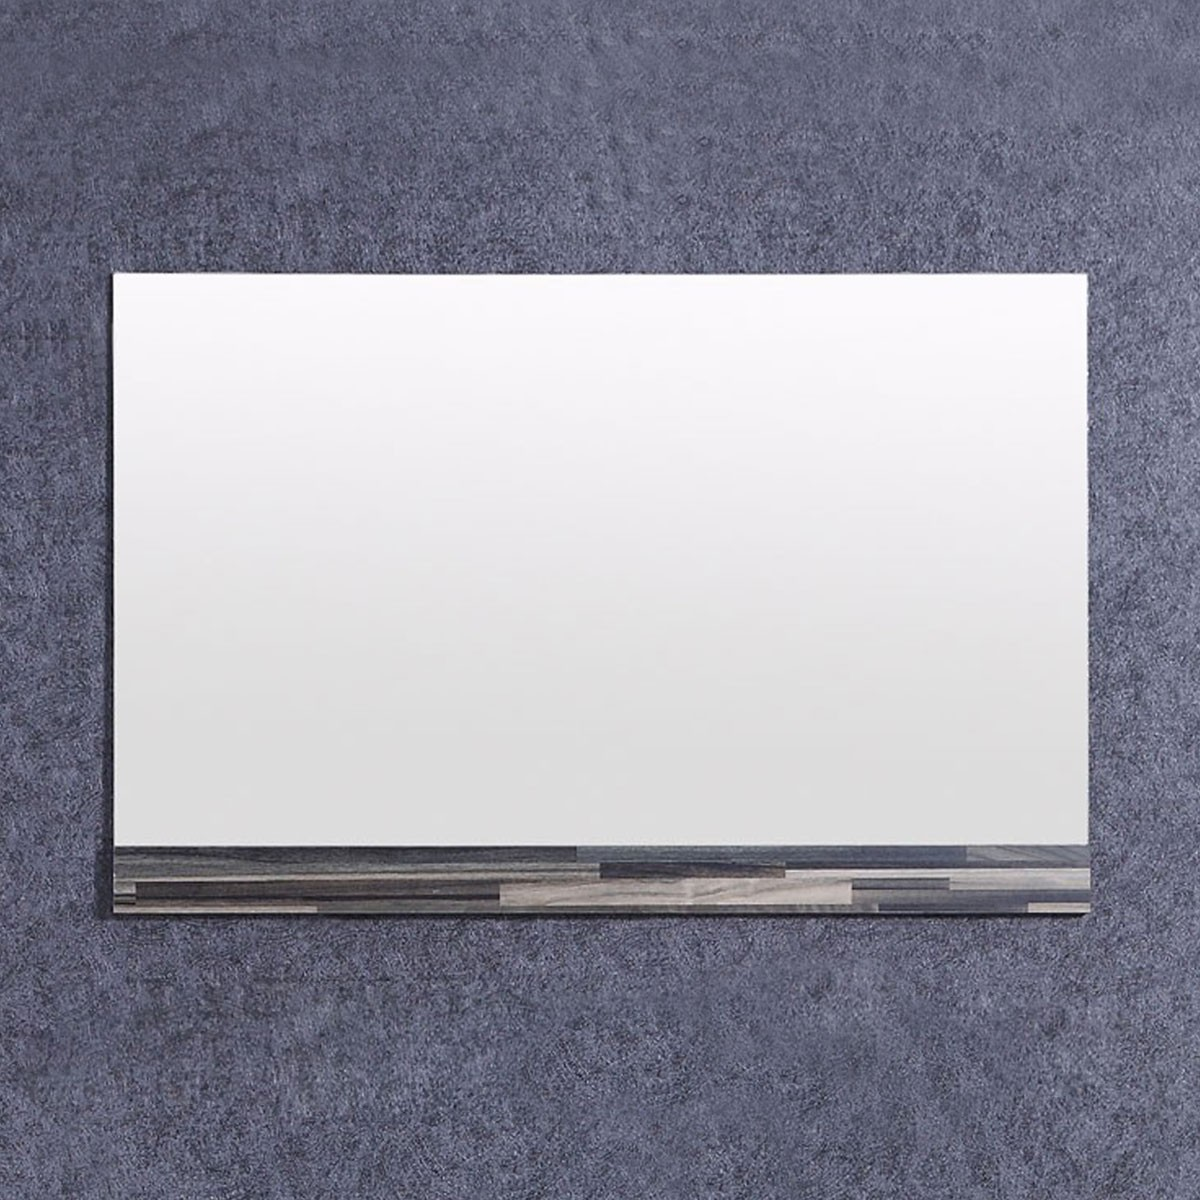 36 x 21 In. Bathroom Vanity Mirror (DK-TH9030-M)